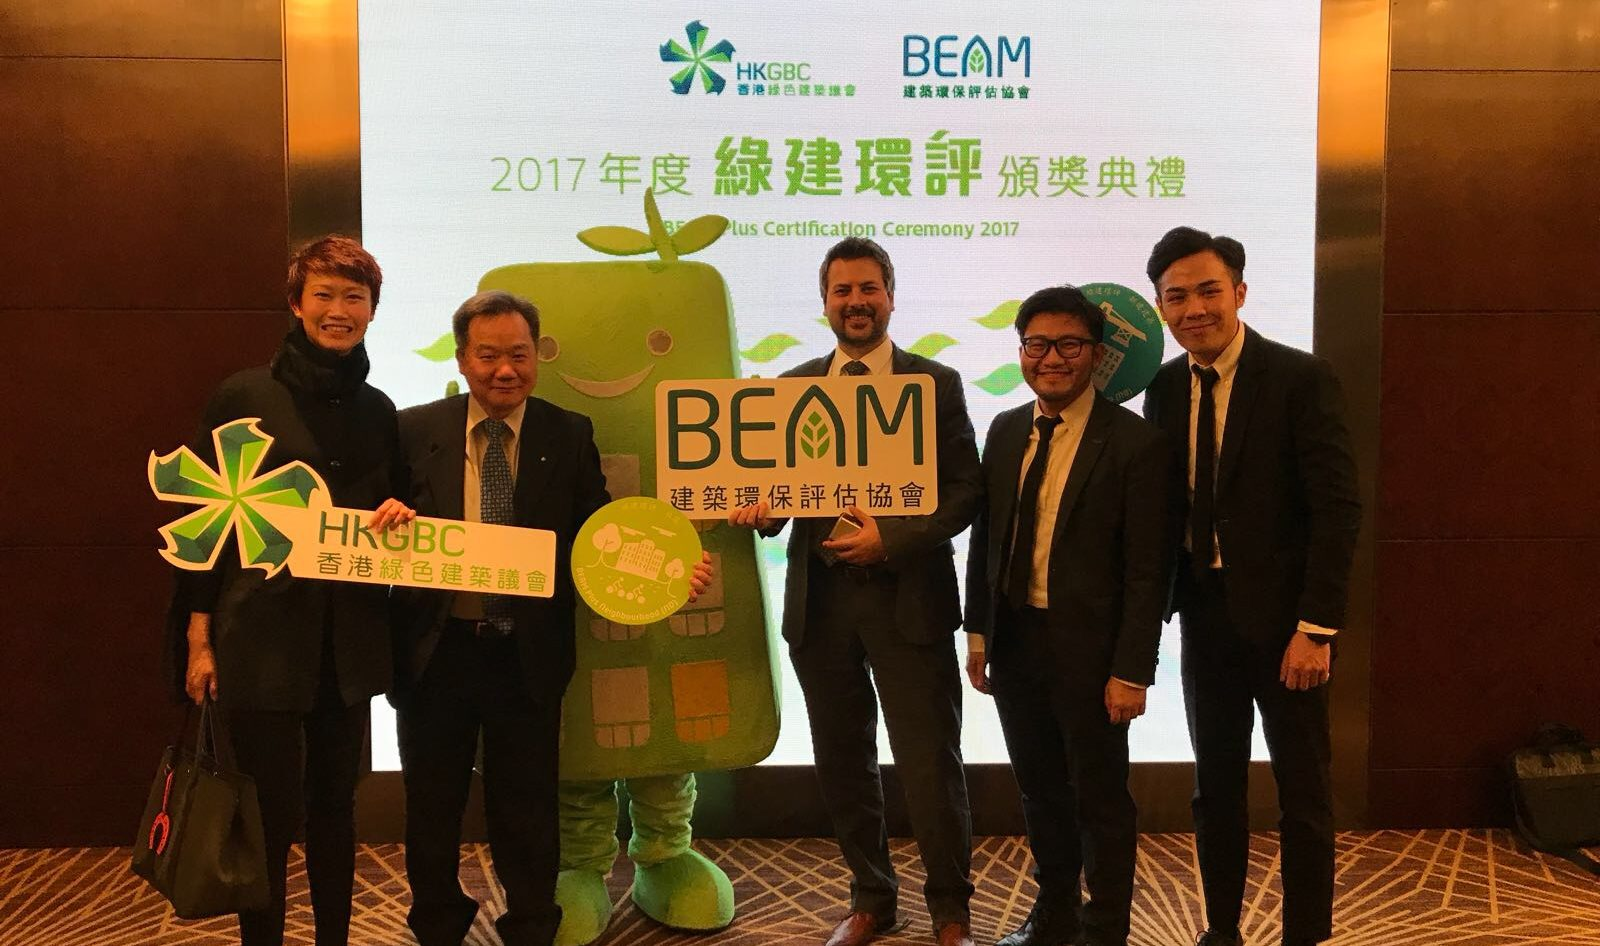 L&O Projects Recognised for BEAM Plus Certification